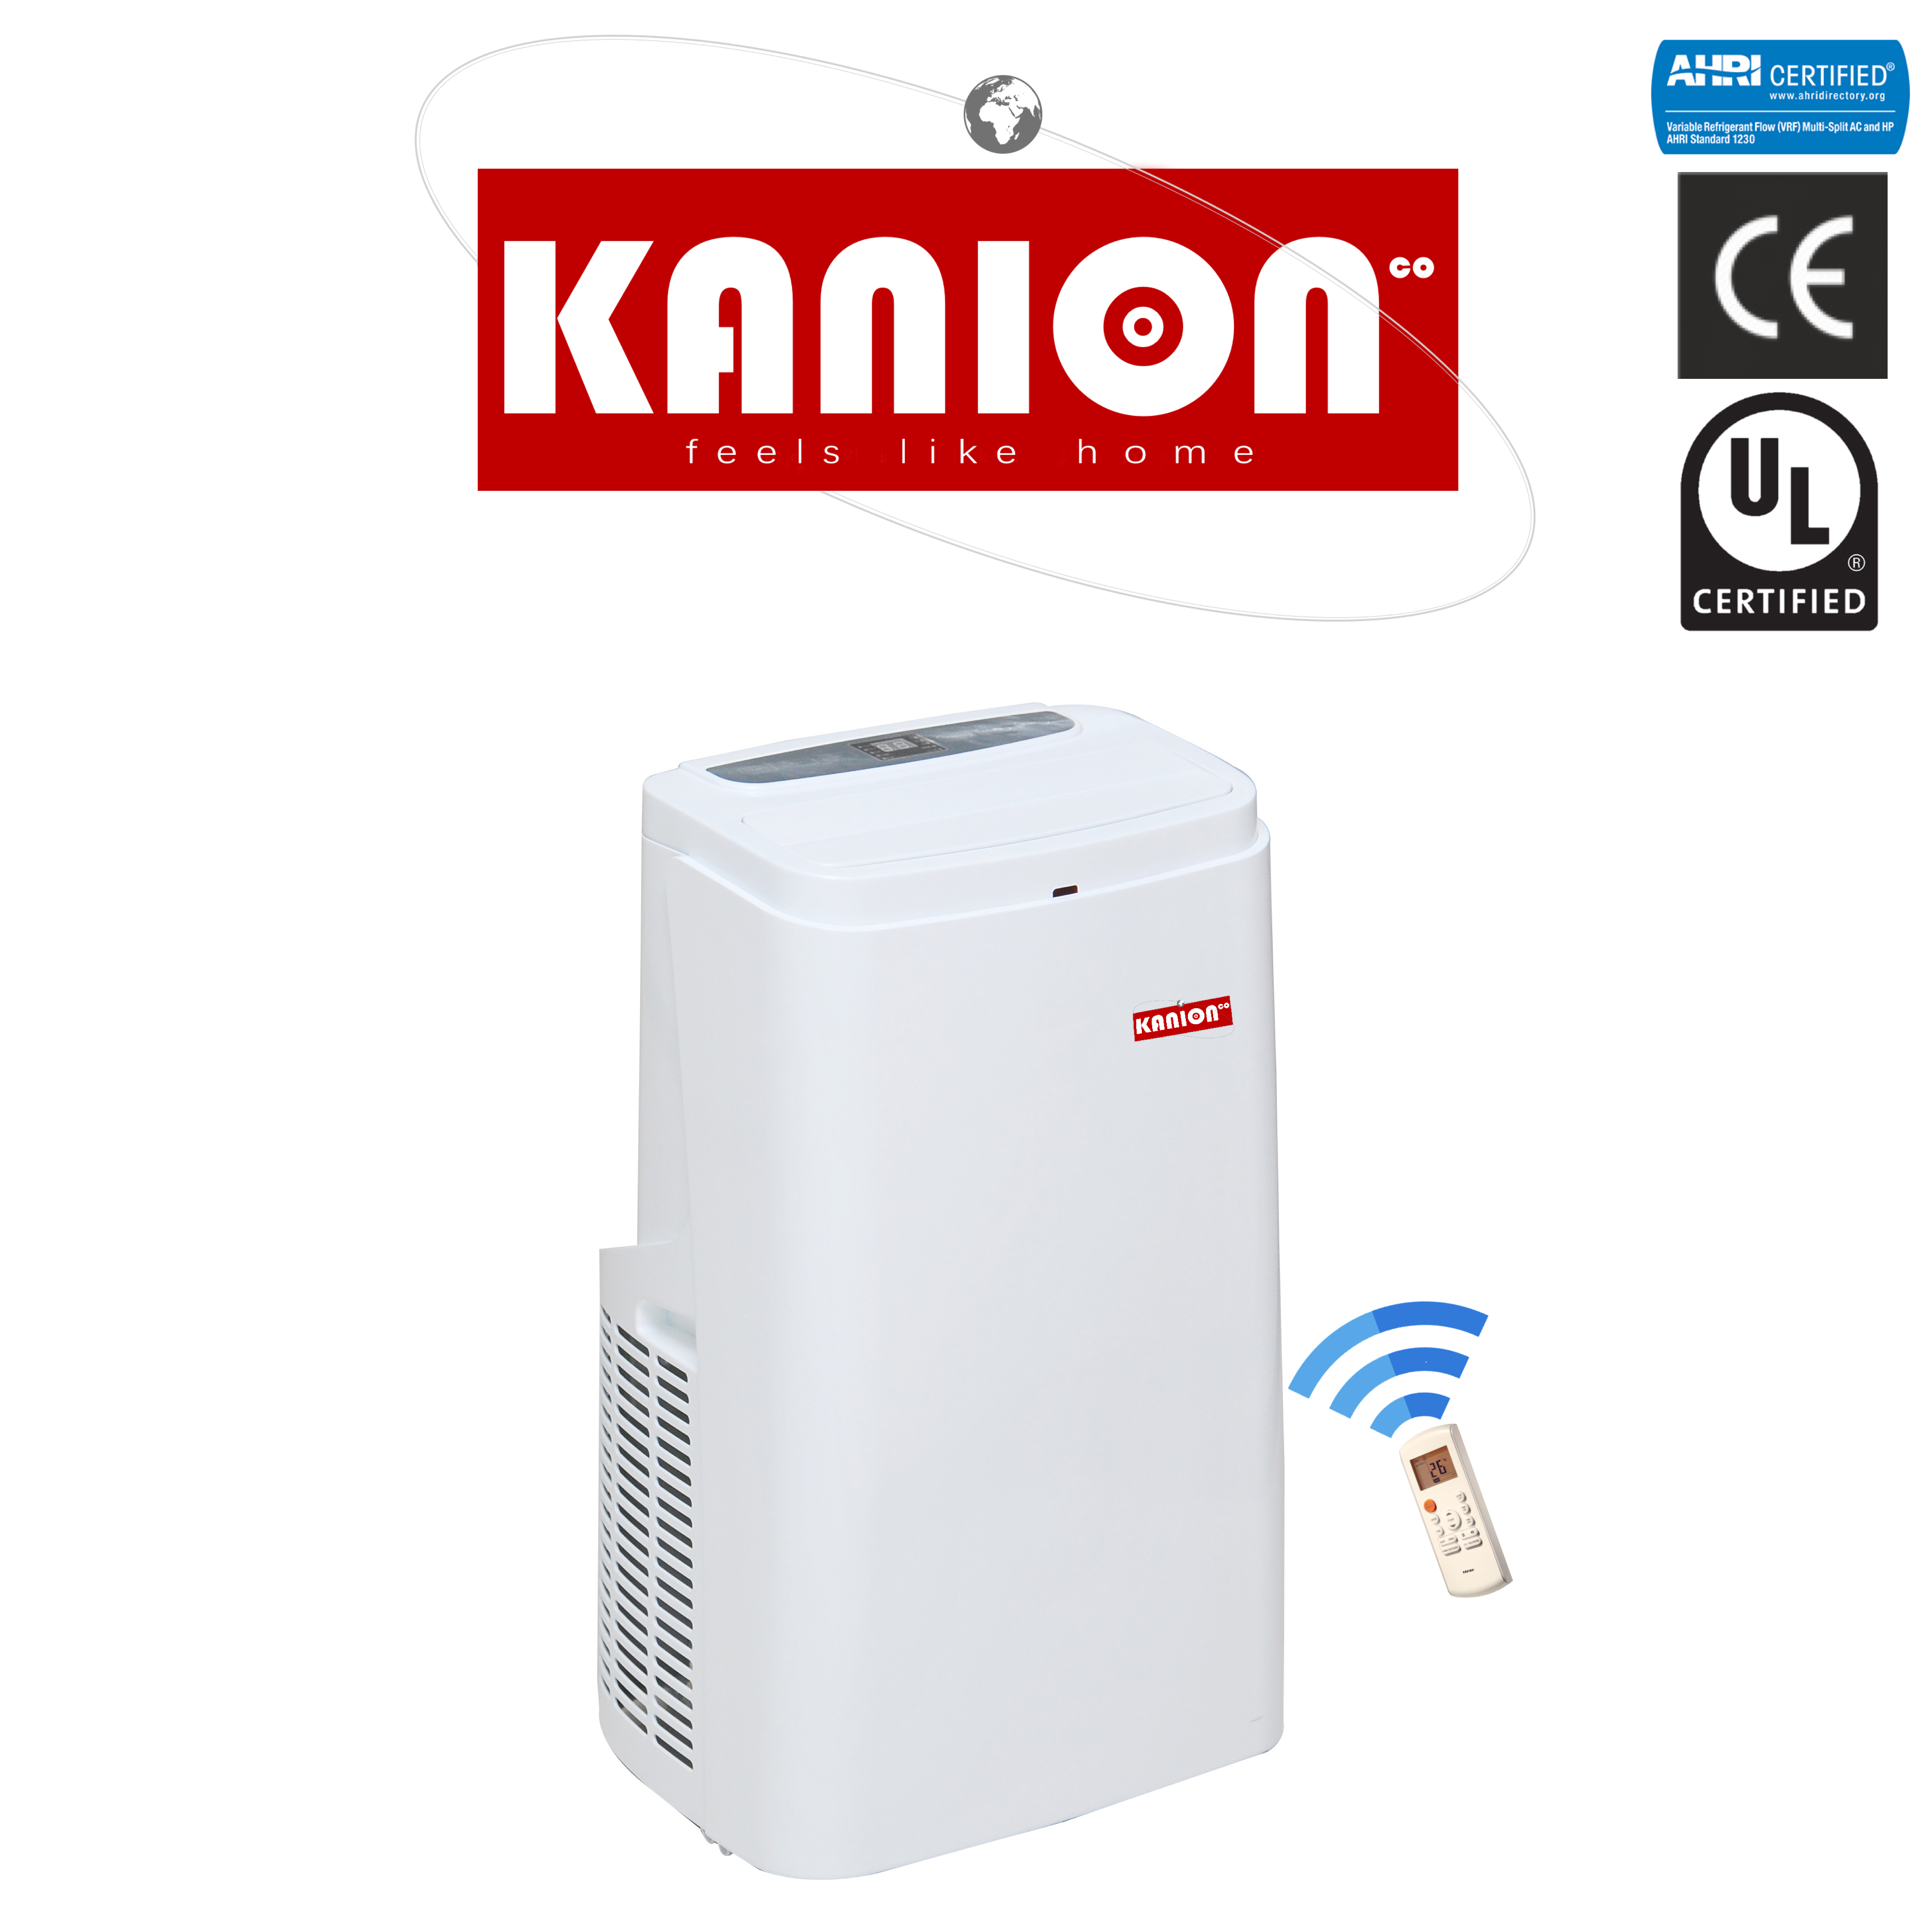 Kanion movable portable air conditioner R410a Cooling and Heating portable <strong>ac</strong>